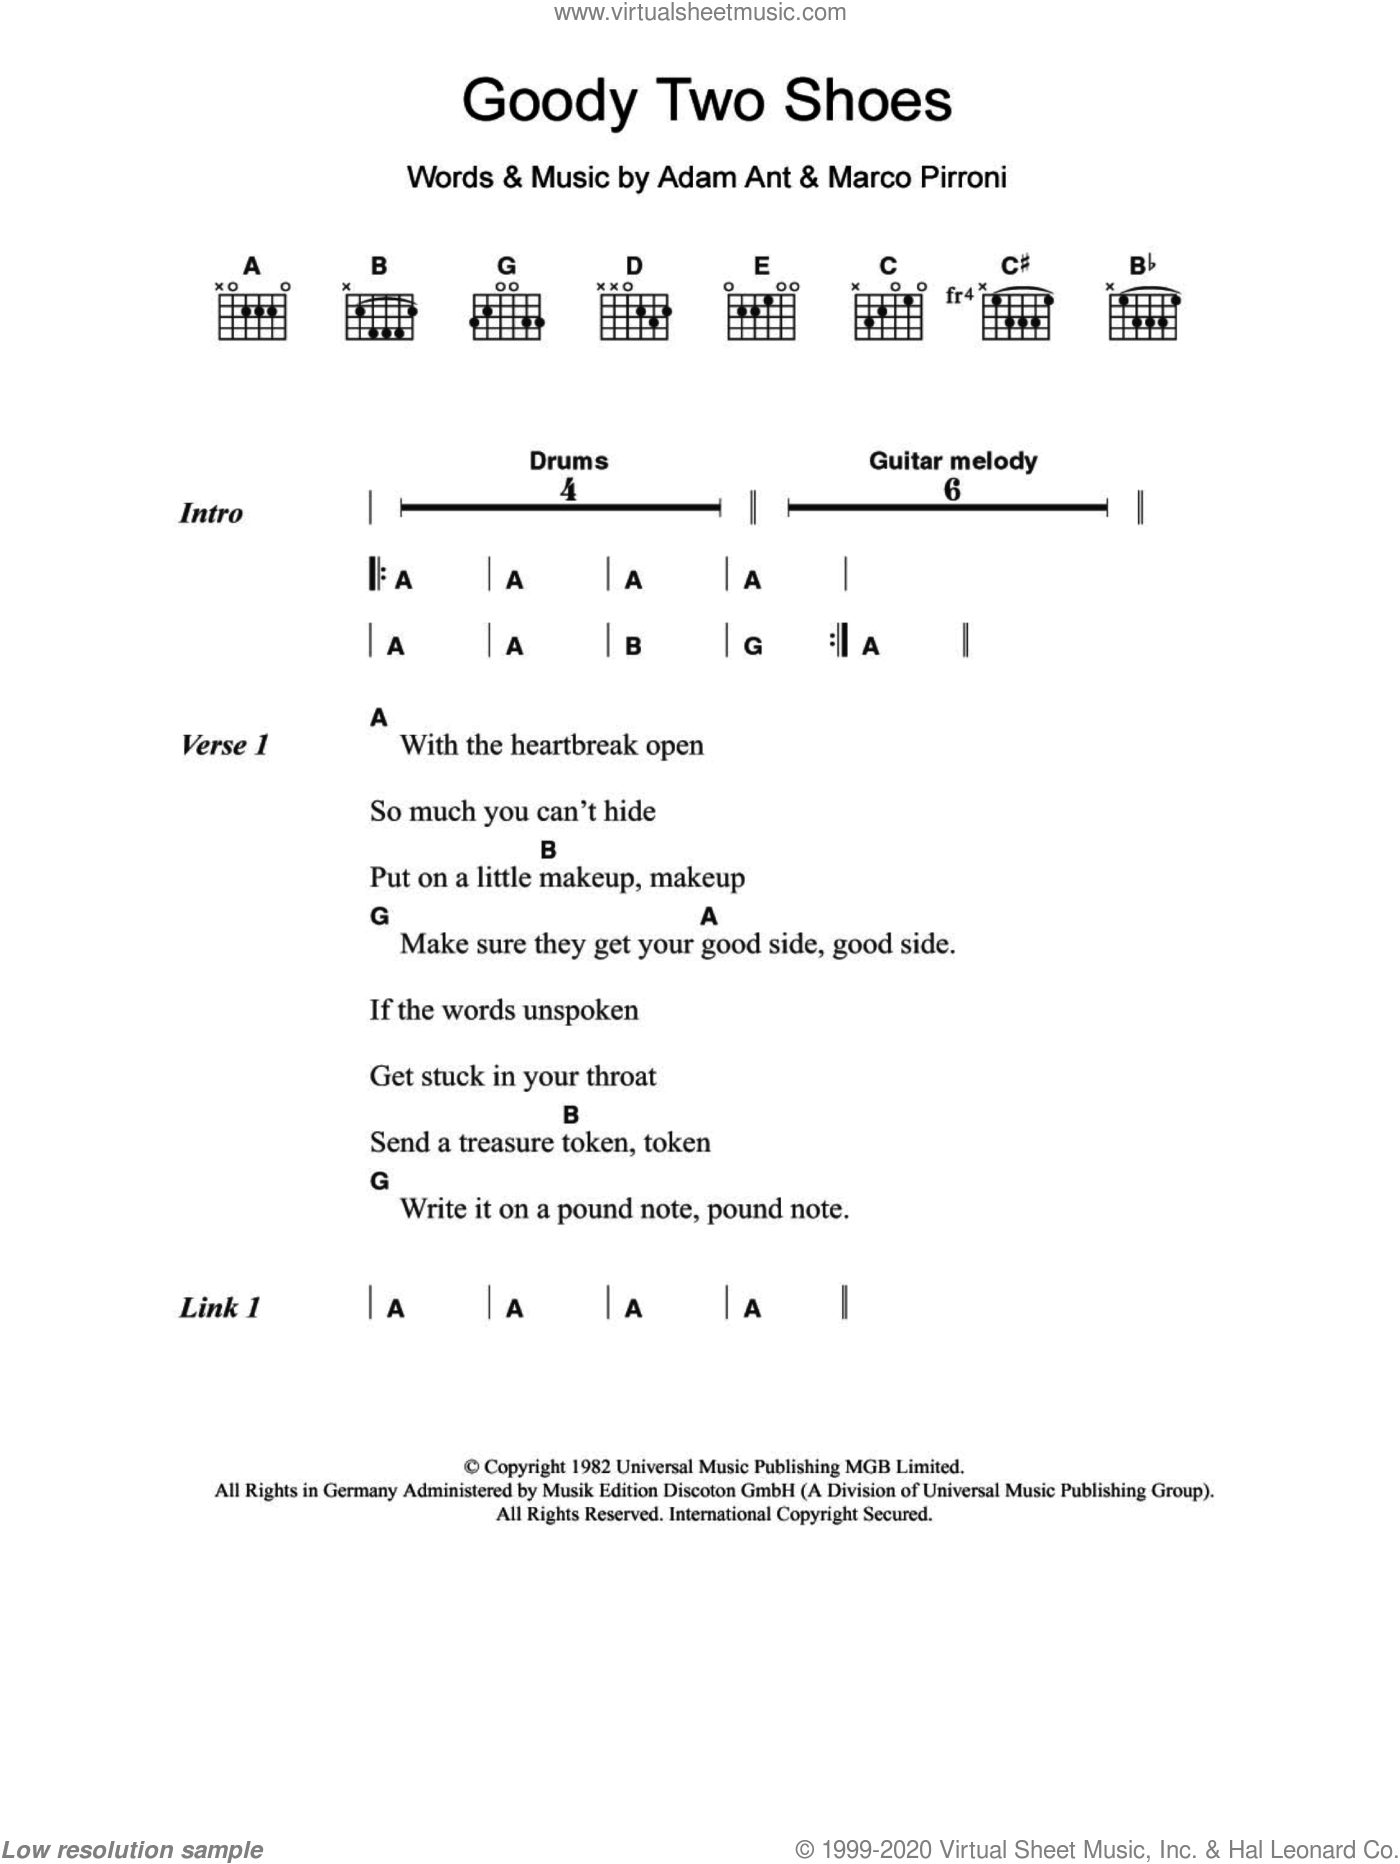 Goody Two Shoes sheet music for guitar (chords) by Marco Pirroni